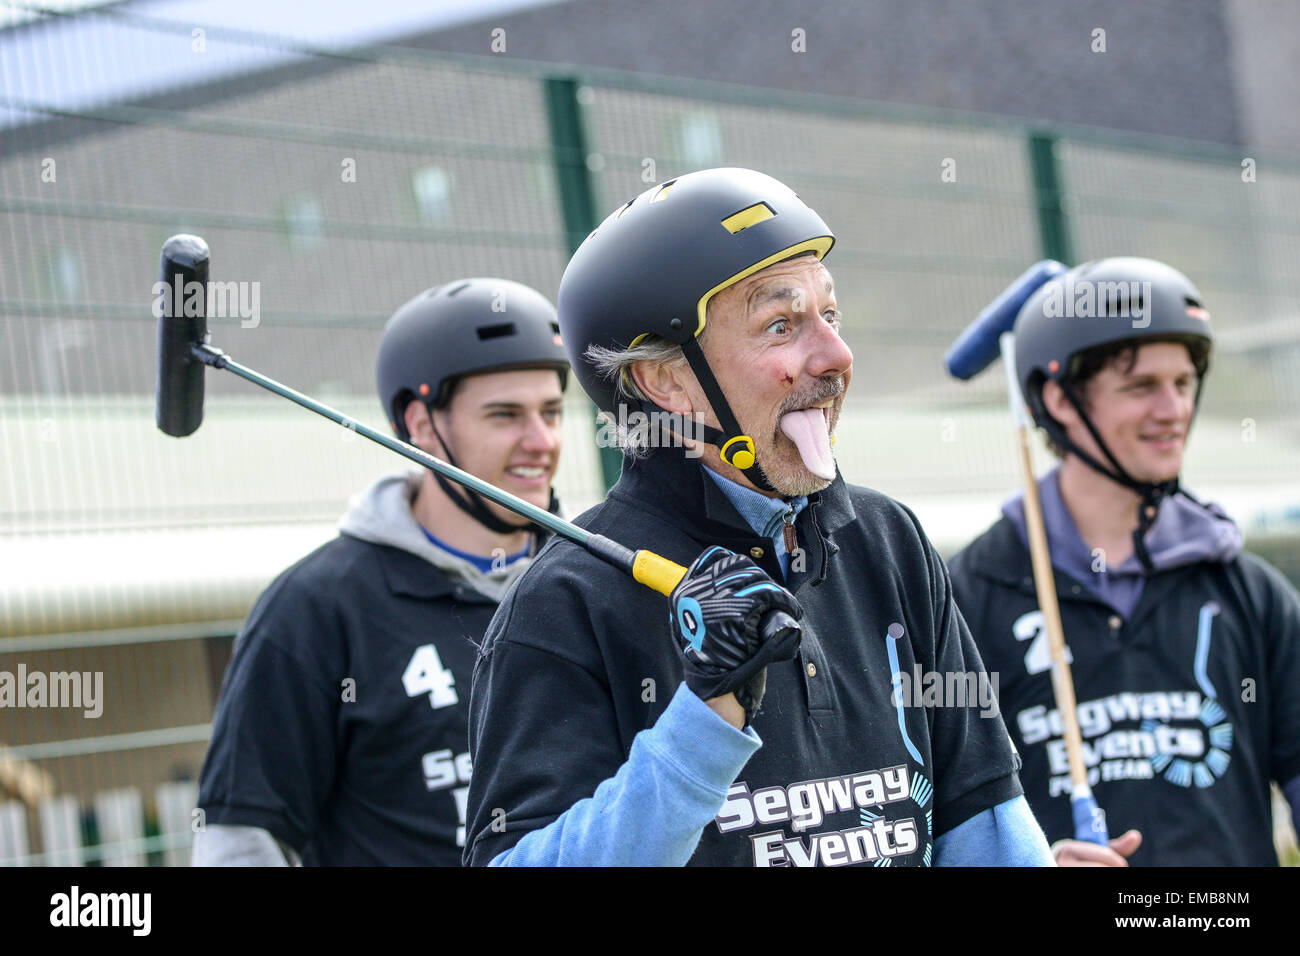 Rugby, Warwickshire, UK. 19th April, 2015. A player for the Segway Events team with a novelty tounge attachment. - Stock Image